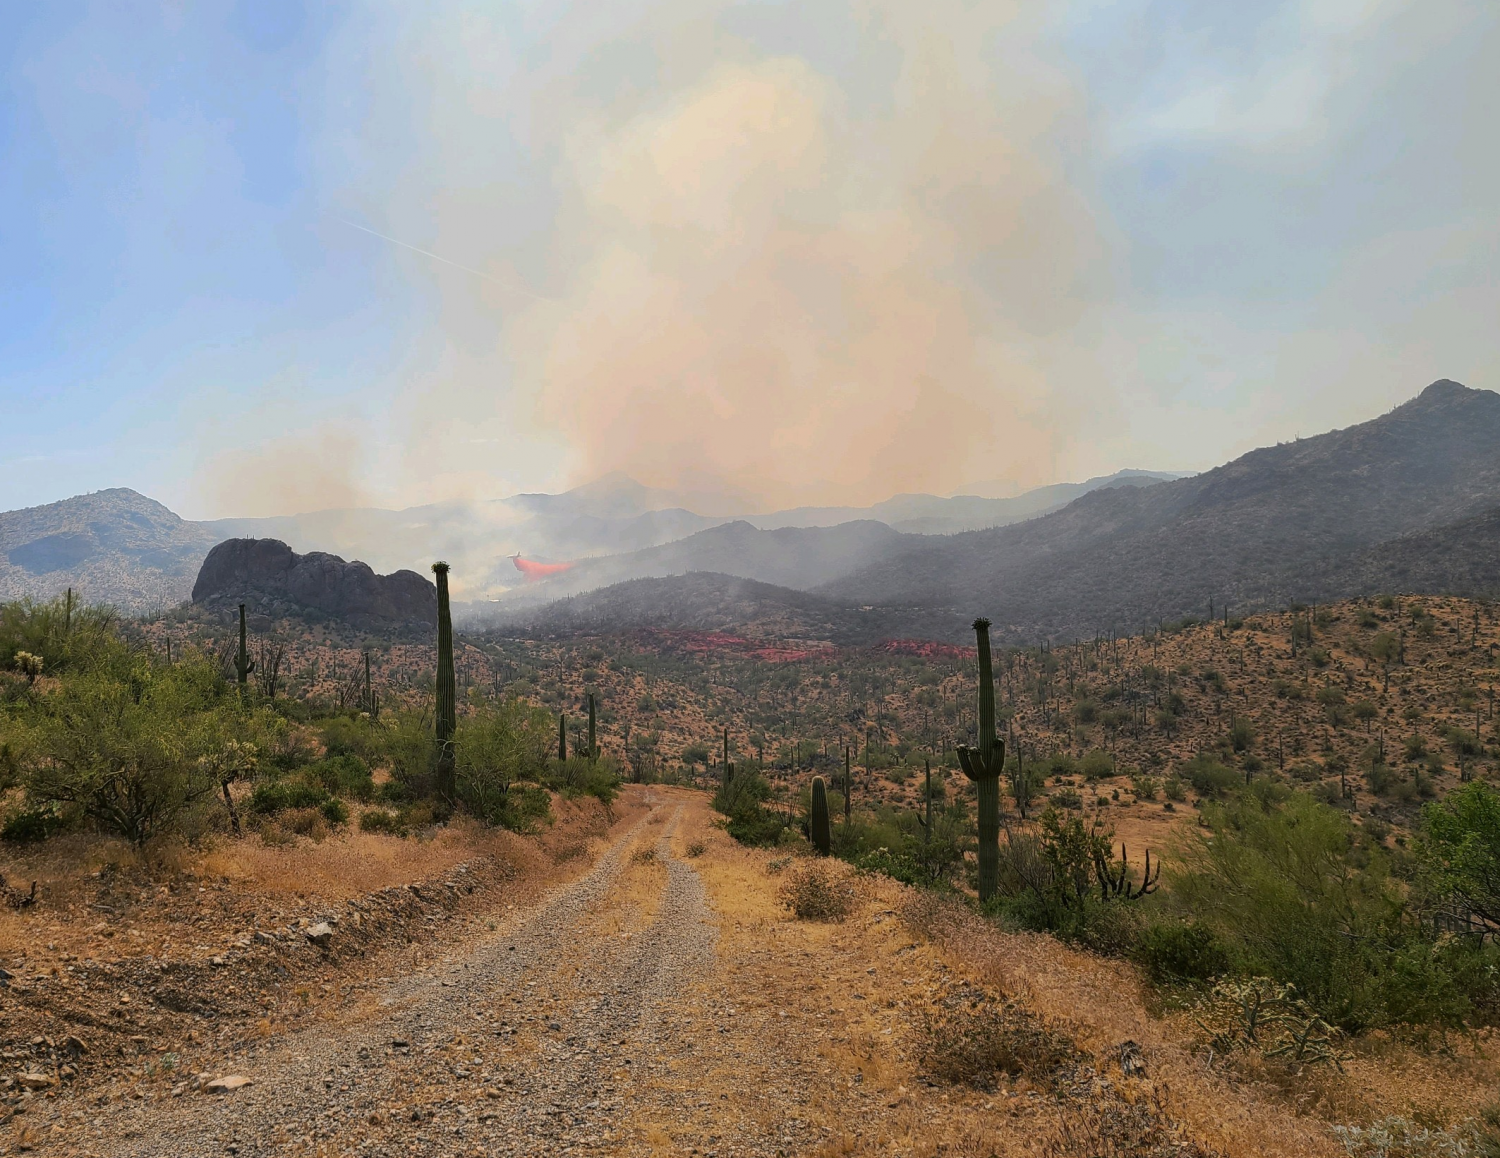 Wildfires Burning Across Arizona; Fire Danger 'Extremely High'